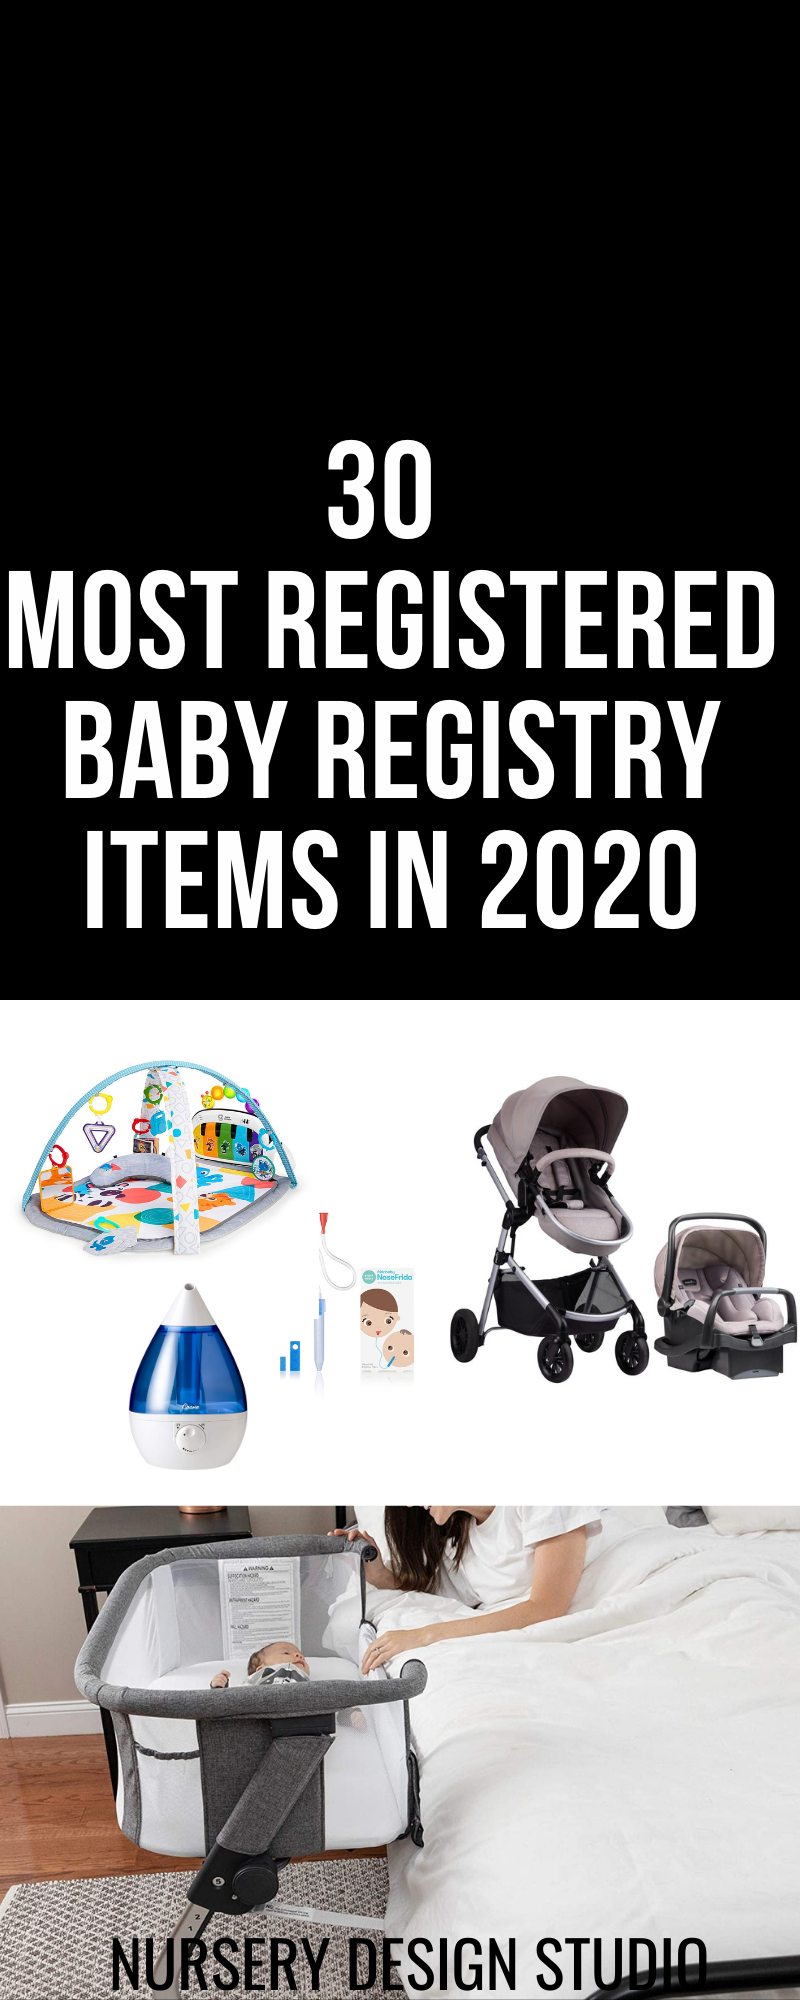 30 most registered items in 2020